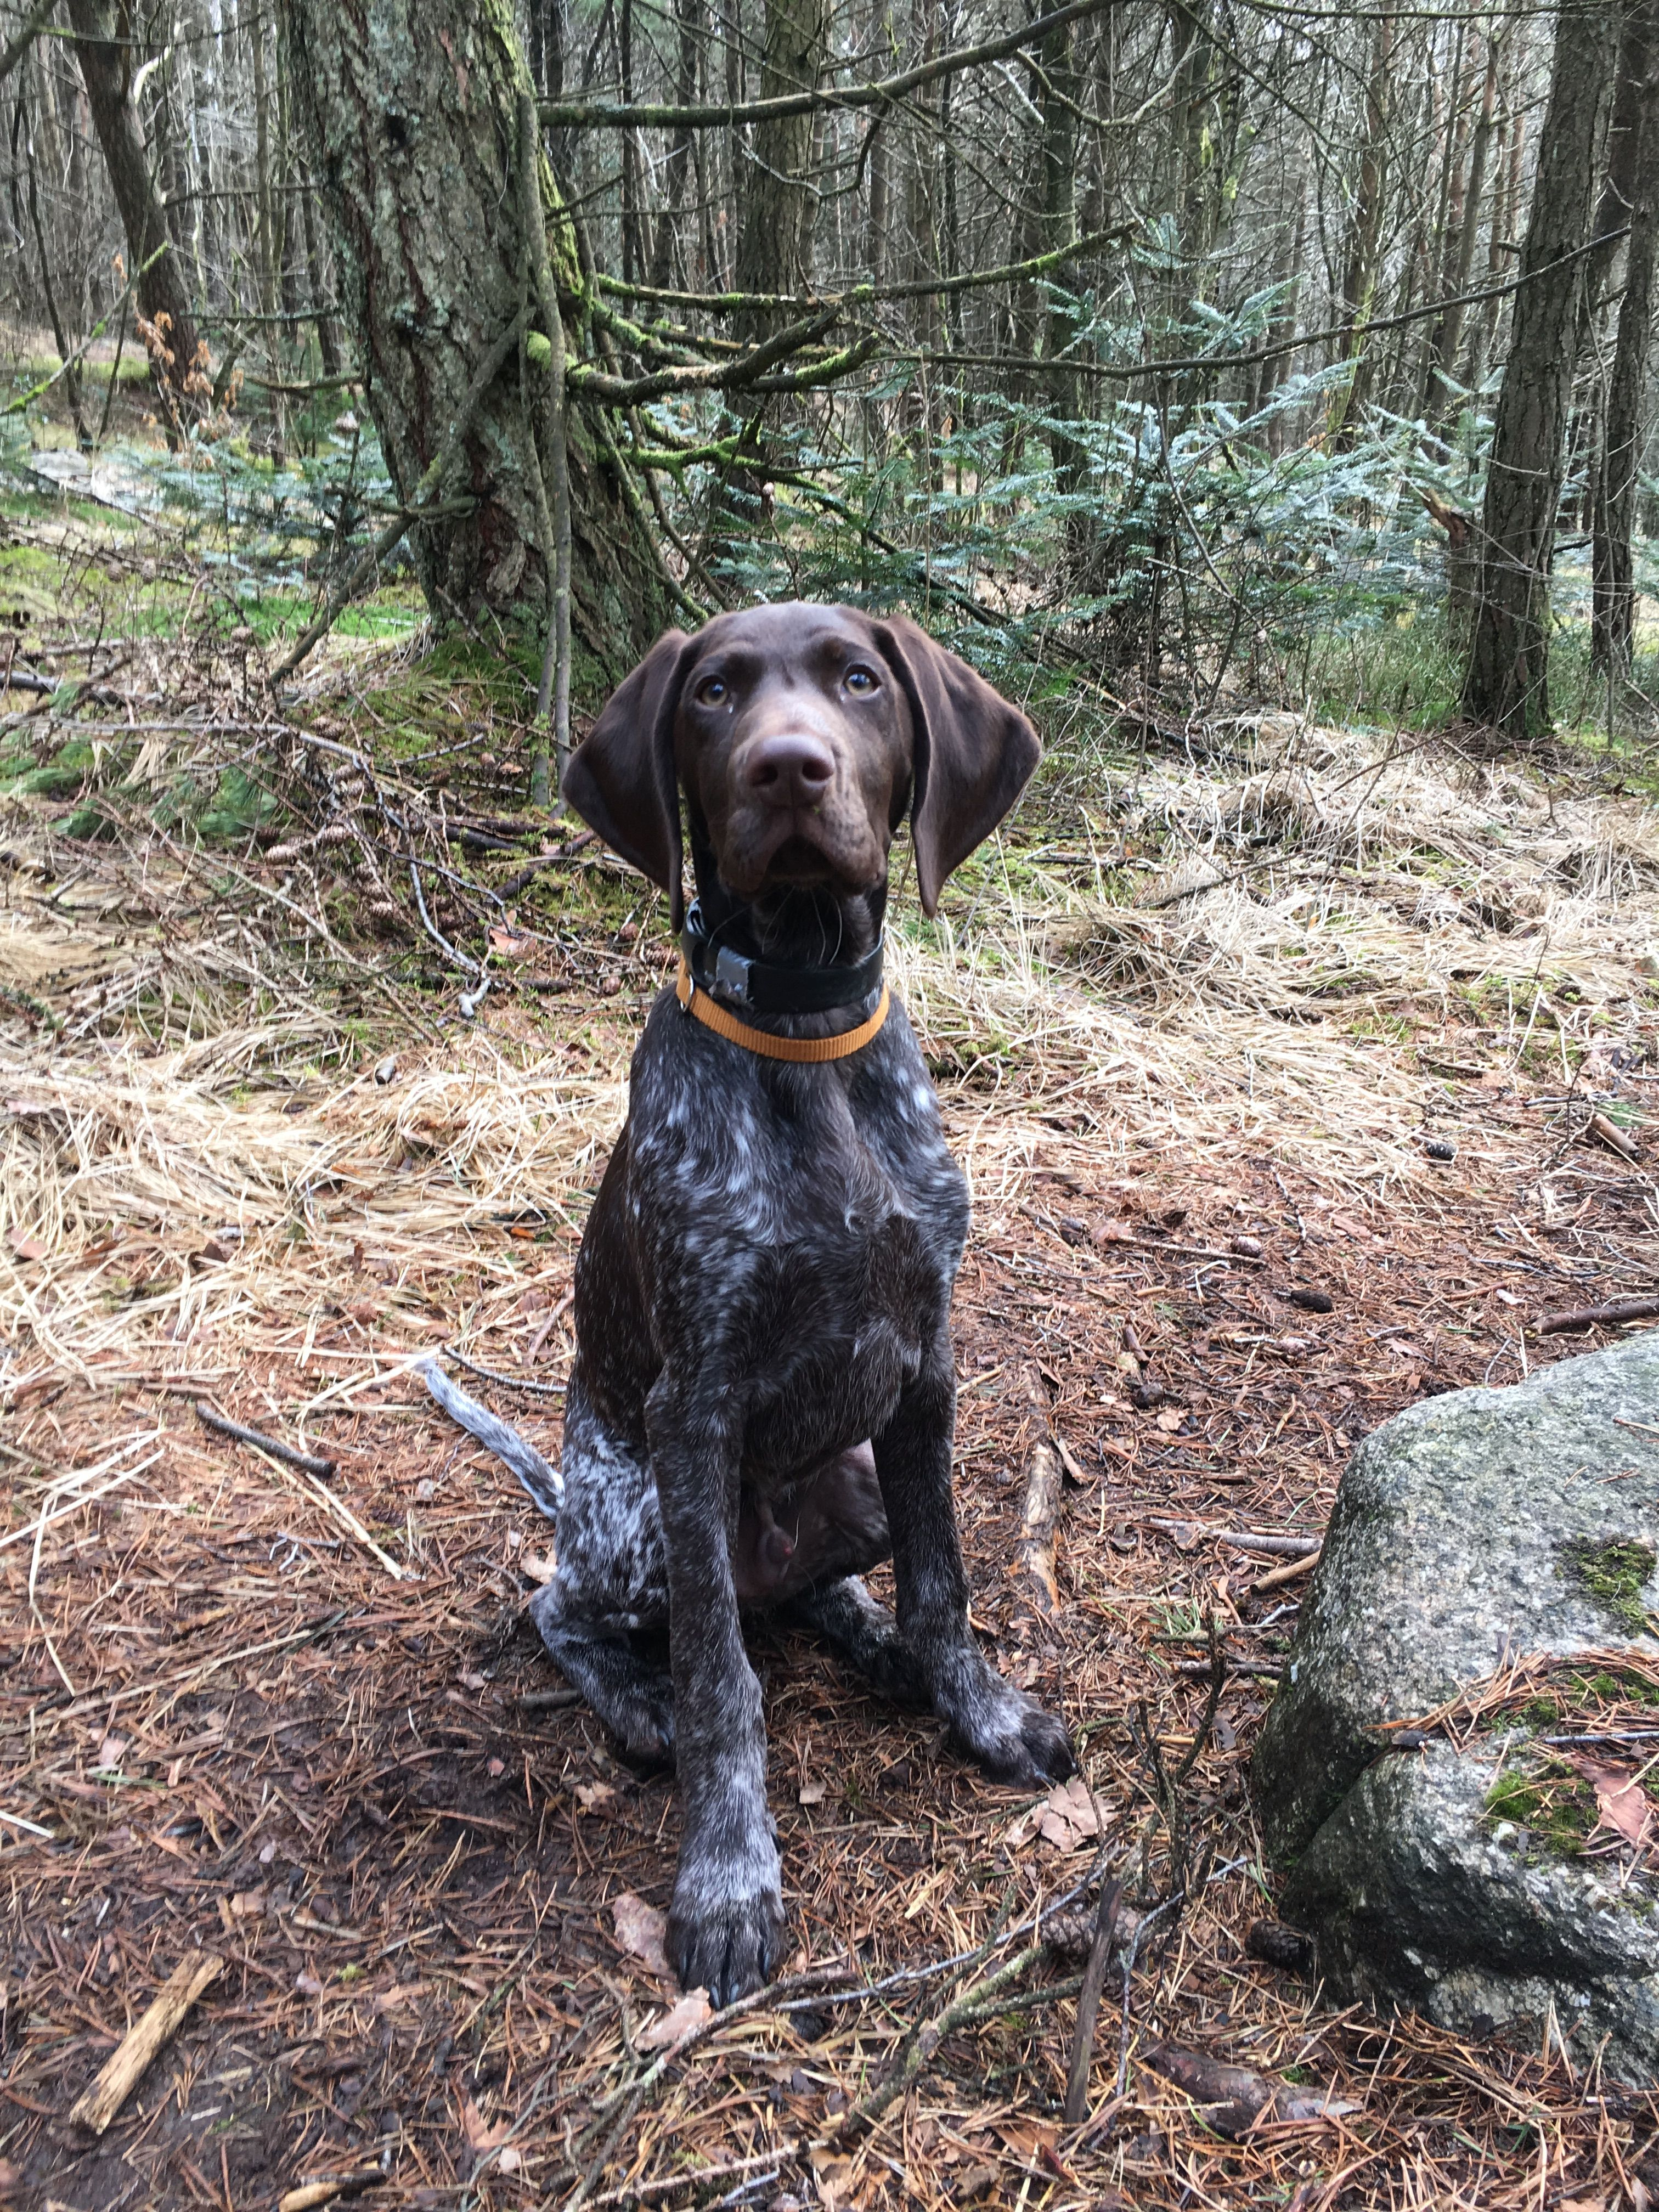 3 5 Months Old German Shorthaired Pointer Vikafjellets Tell Explor German Shorthaired Pointer German Shorthaired Pointer Dog German Shorthaired Pointer Black